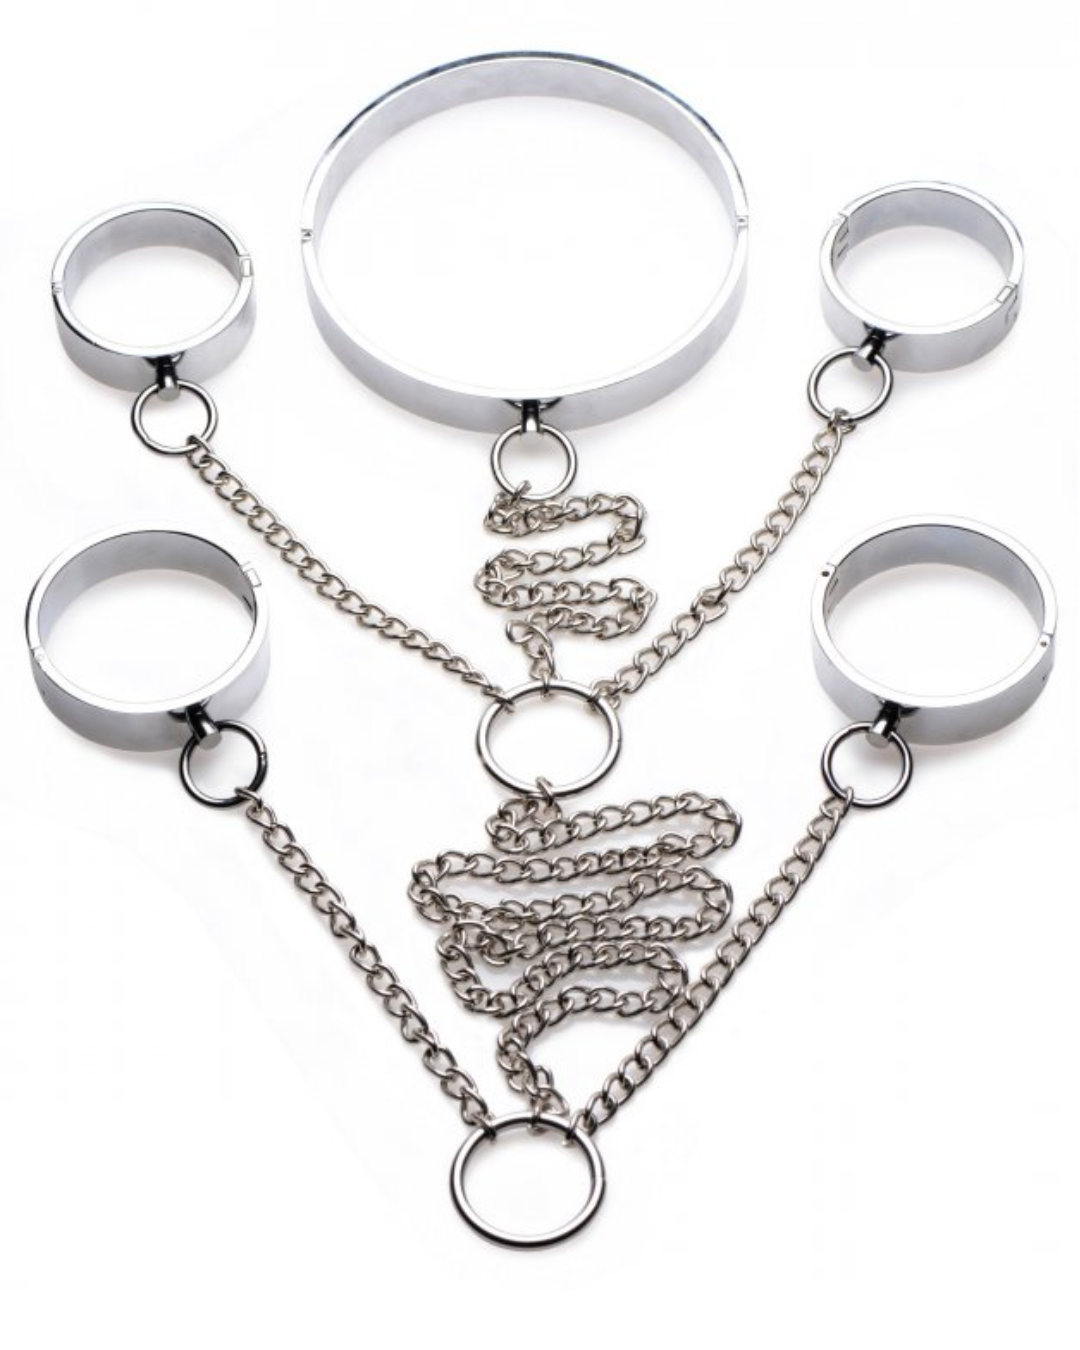 5 Piece Stainless Steel Shackle Set (Large)